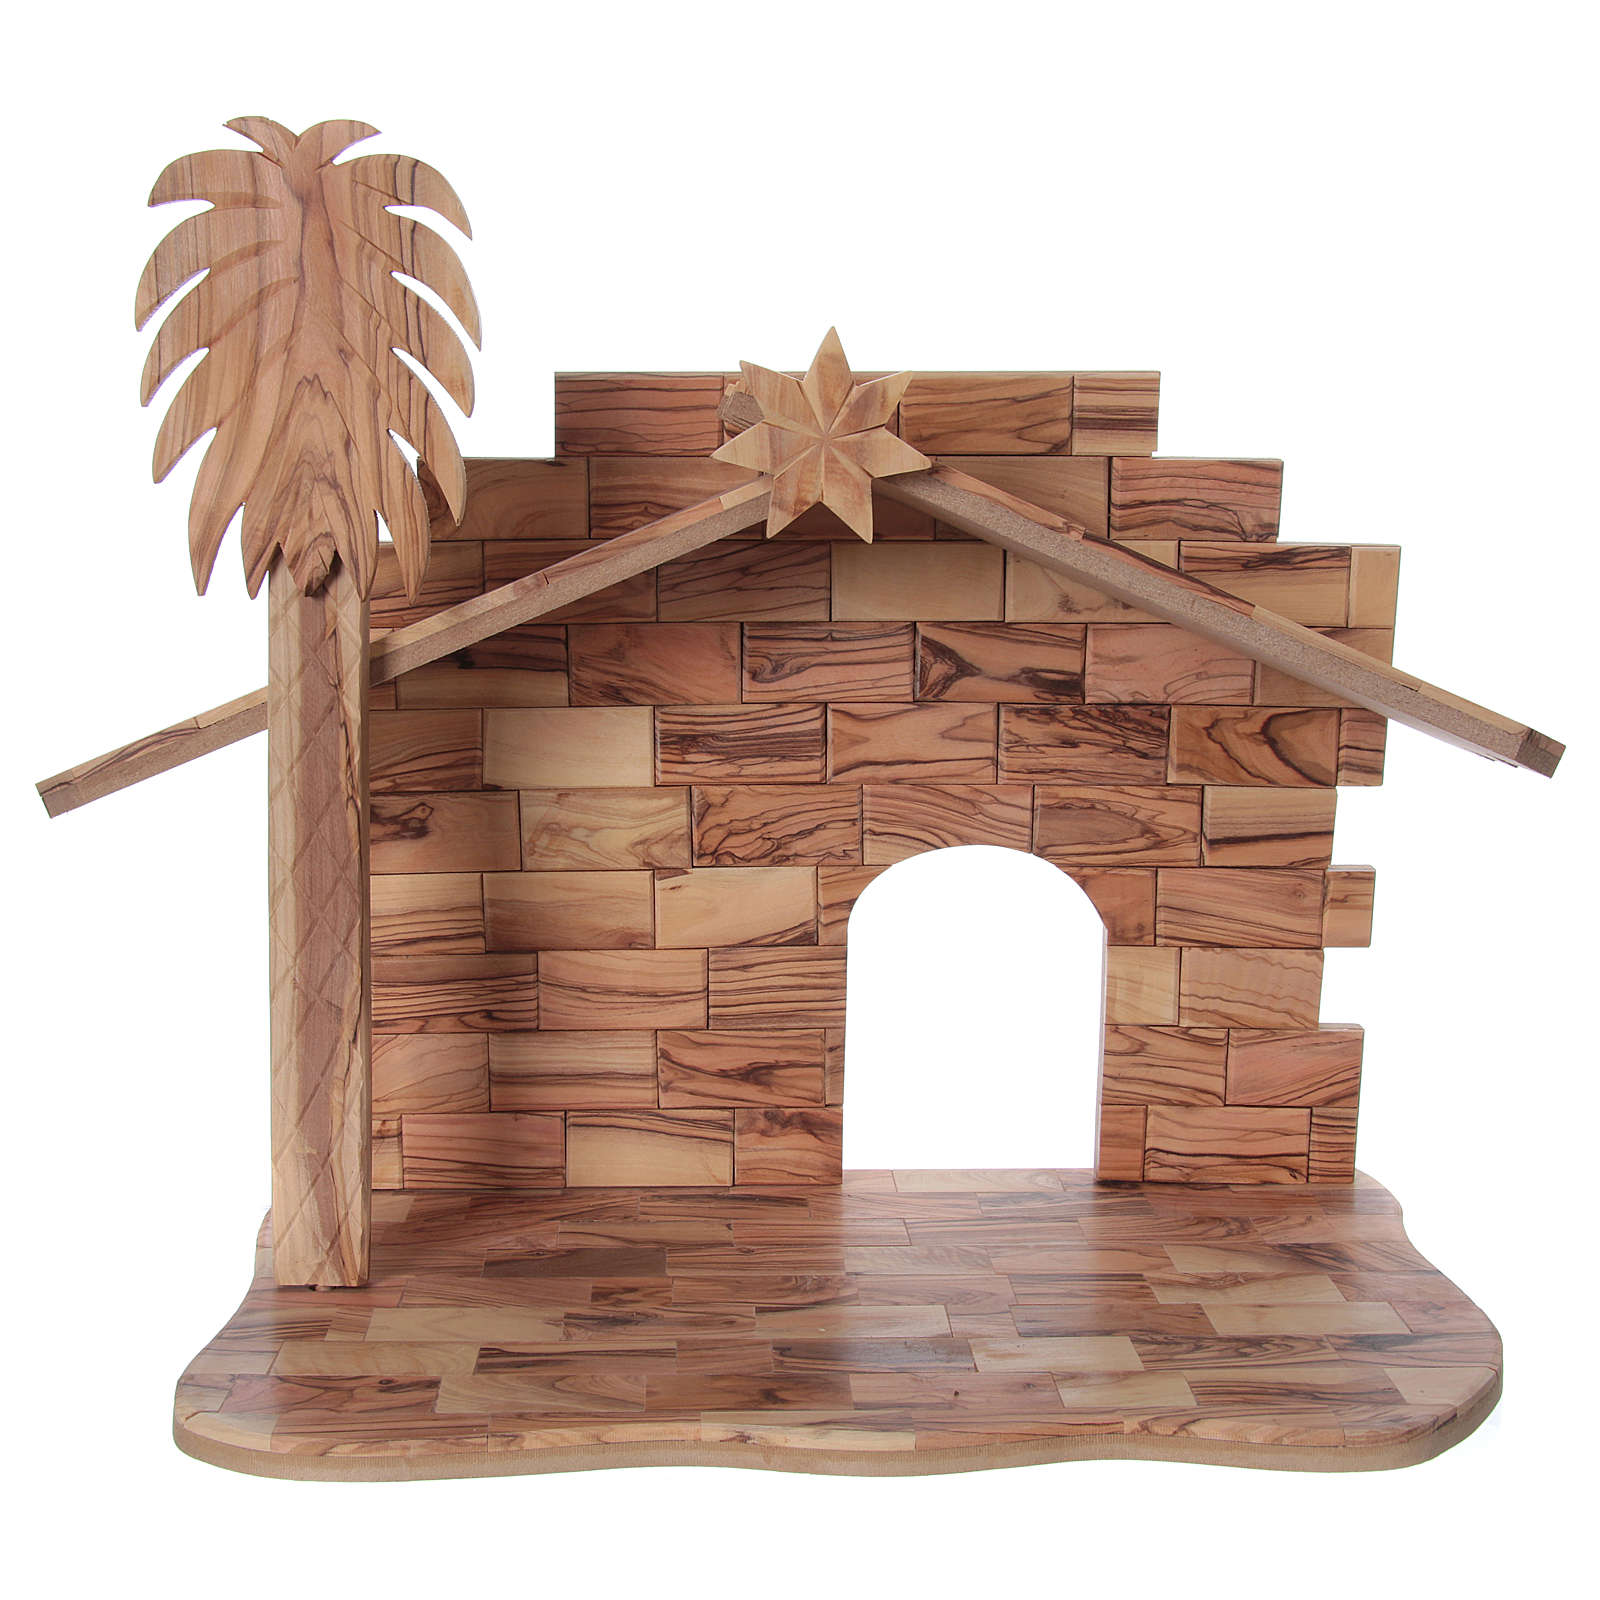 Nativity Scene in Olive Wood with hut 22 cm, 31x 41x24 cm 4